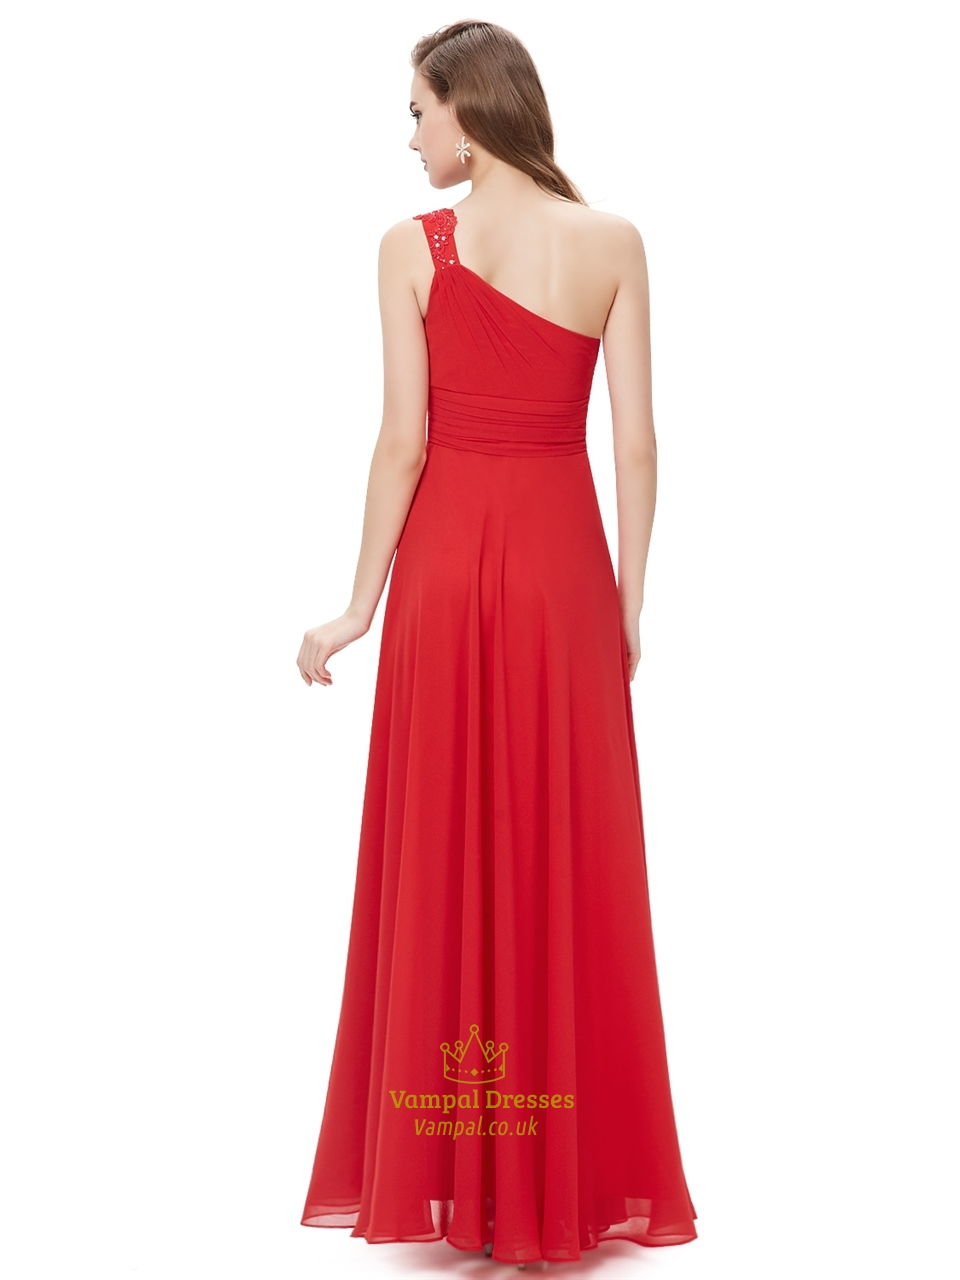 Red Flowy One Shoulder Chiffon Bridesmaid Dresses With